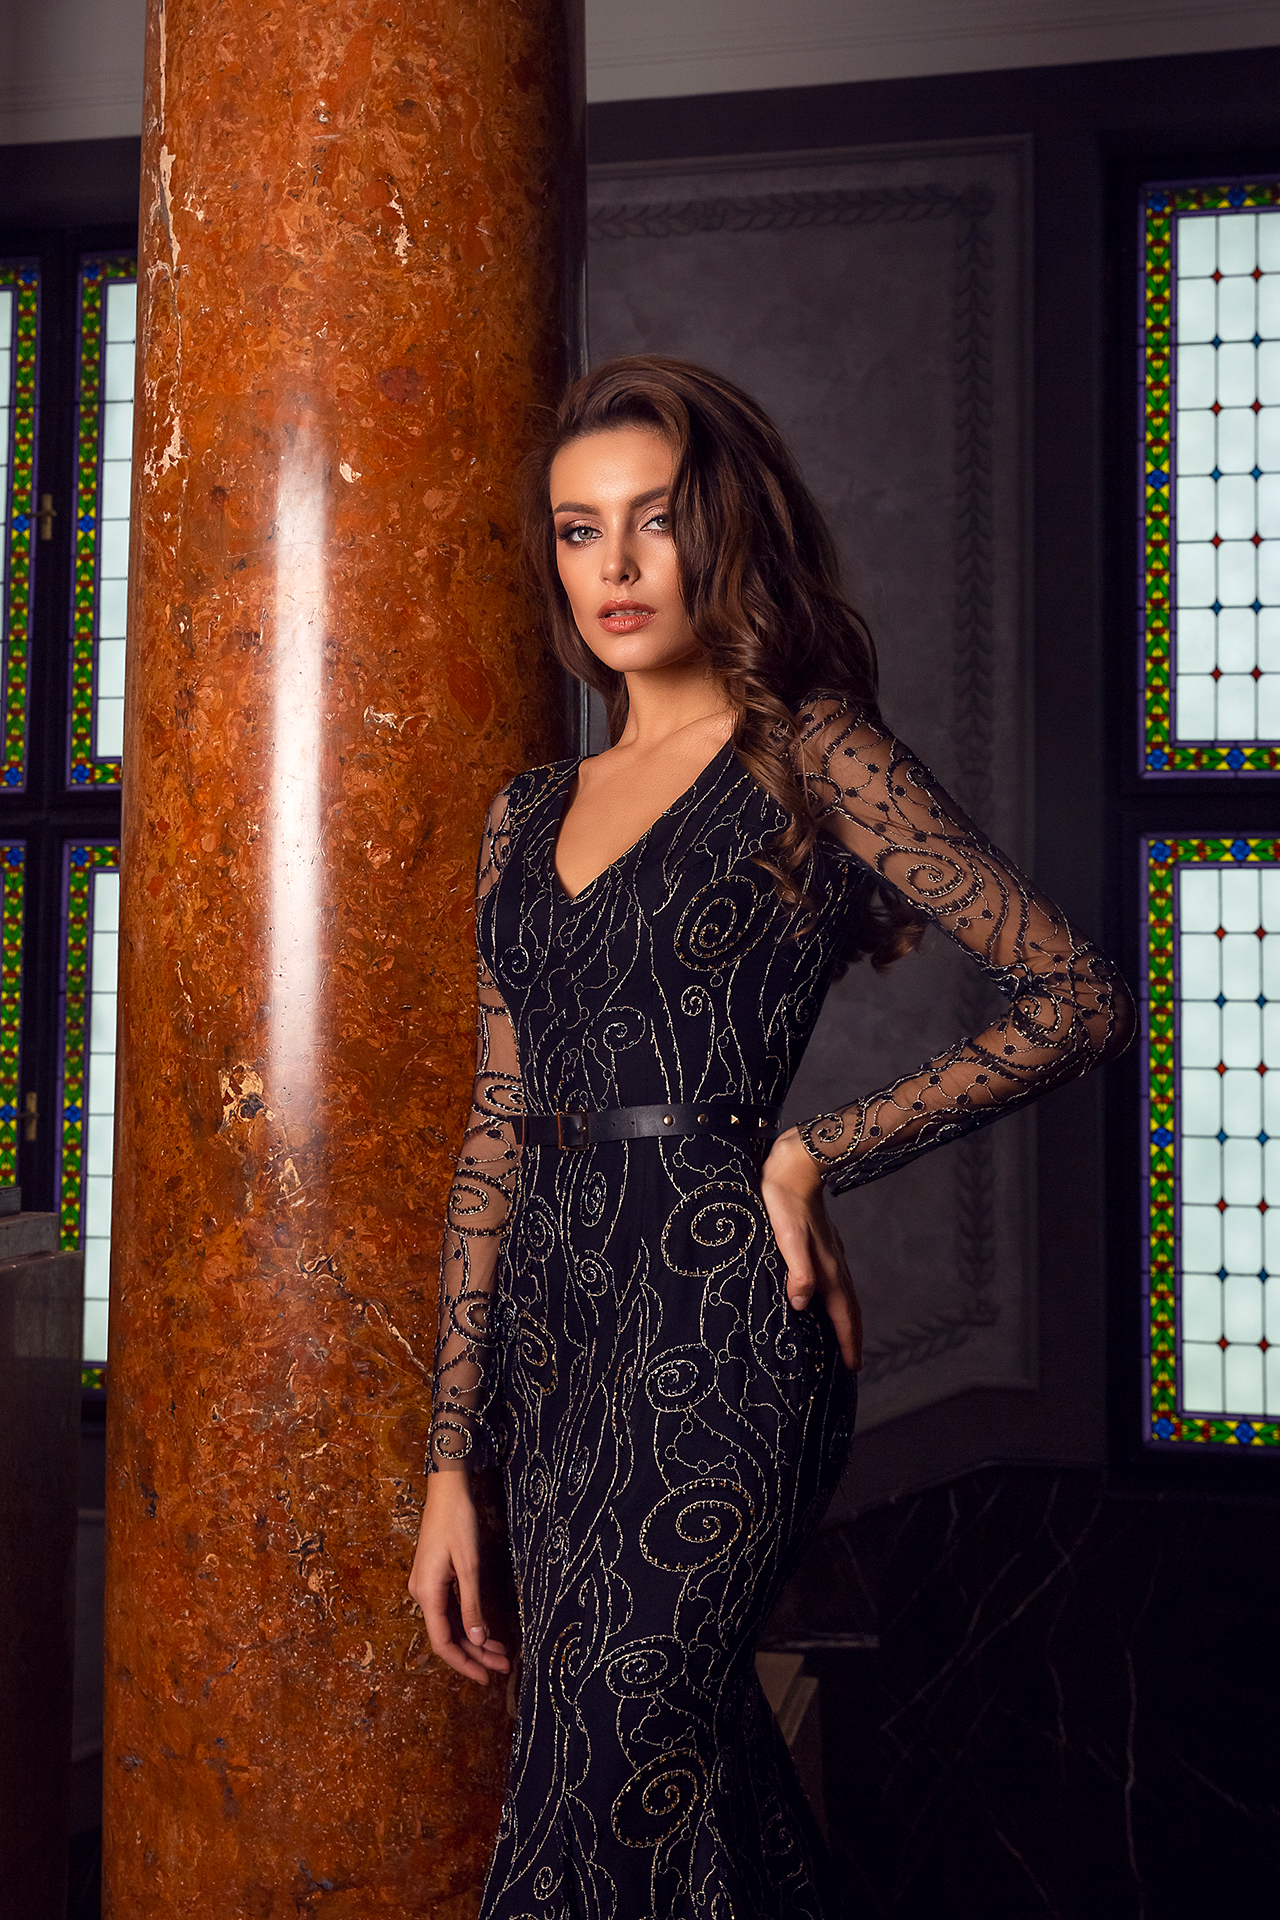 Evening gowns S-1487 Silhouette  Fitted  Color  Black  Neckline  Portrait (V-neck)  Sleeves  Long Sleeves  Fitted - foto 2